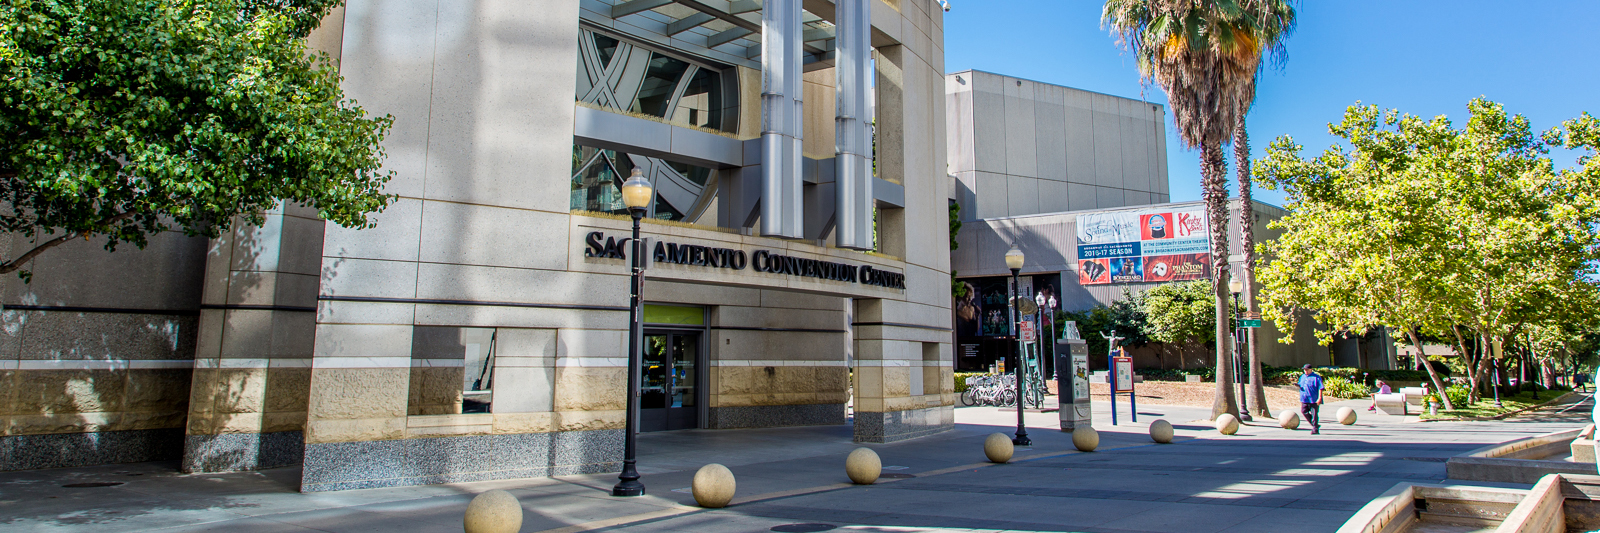 Sacramento Convention Center